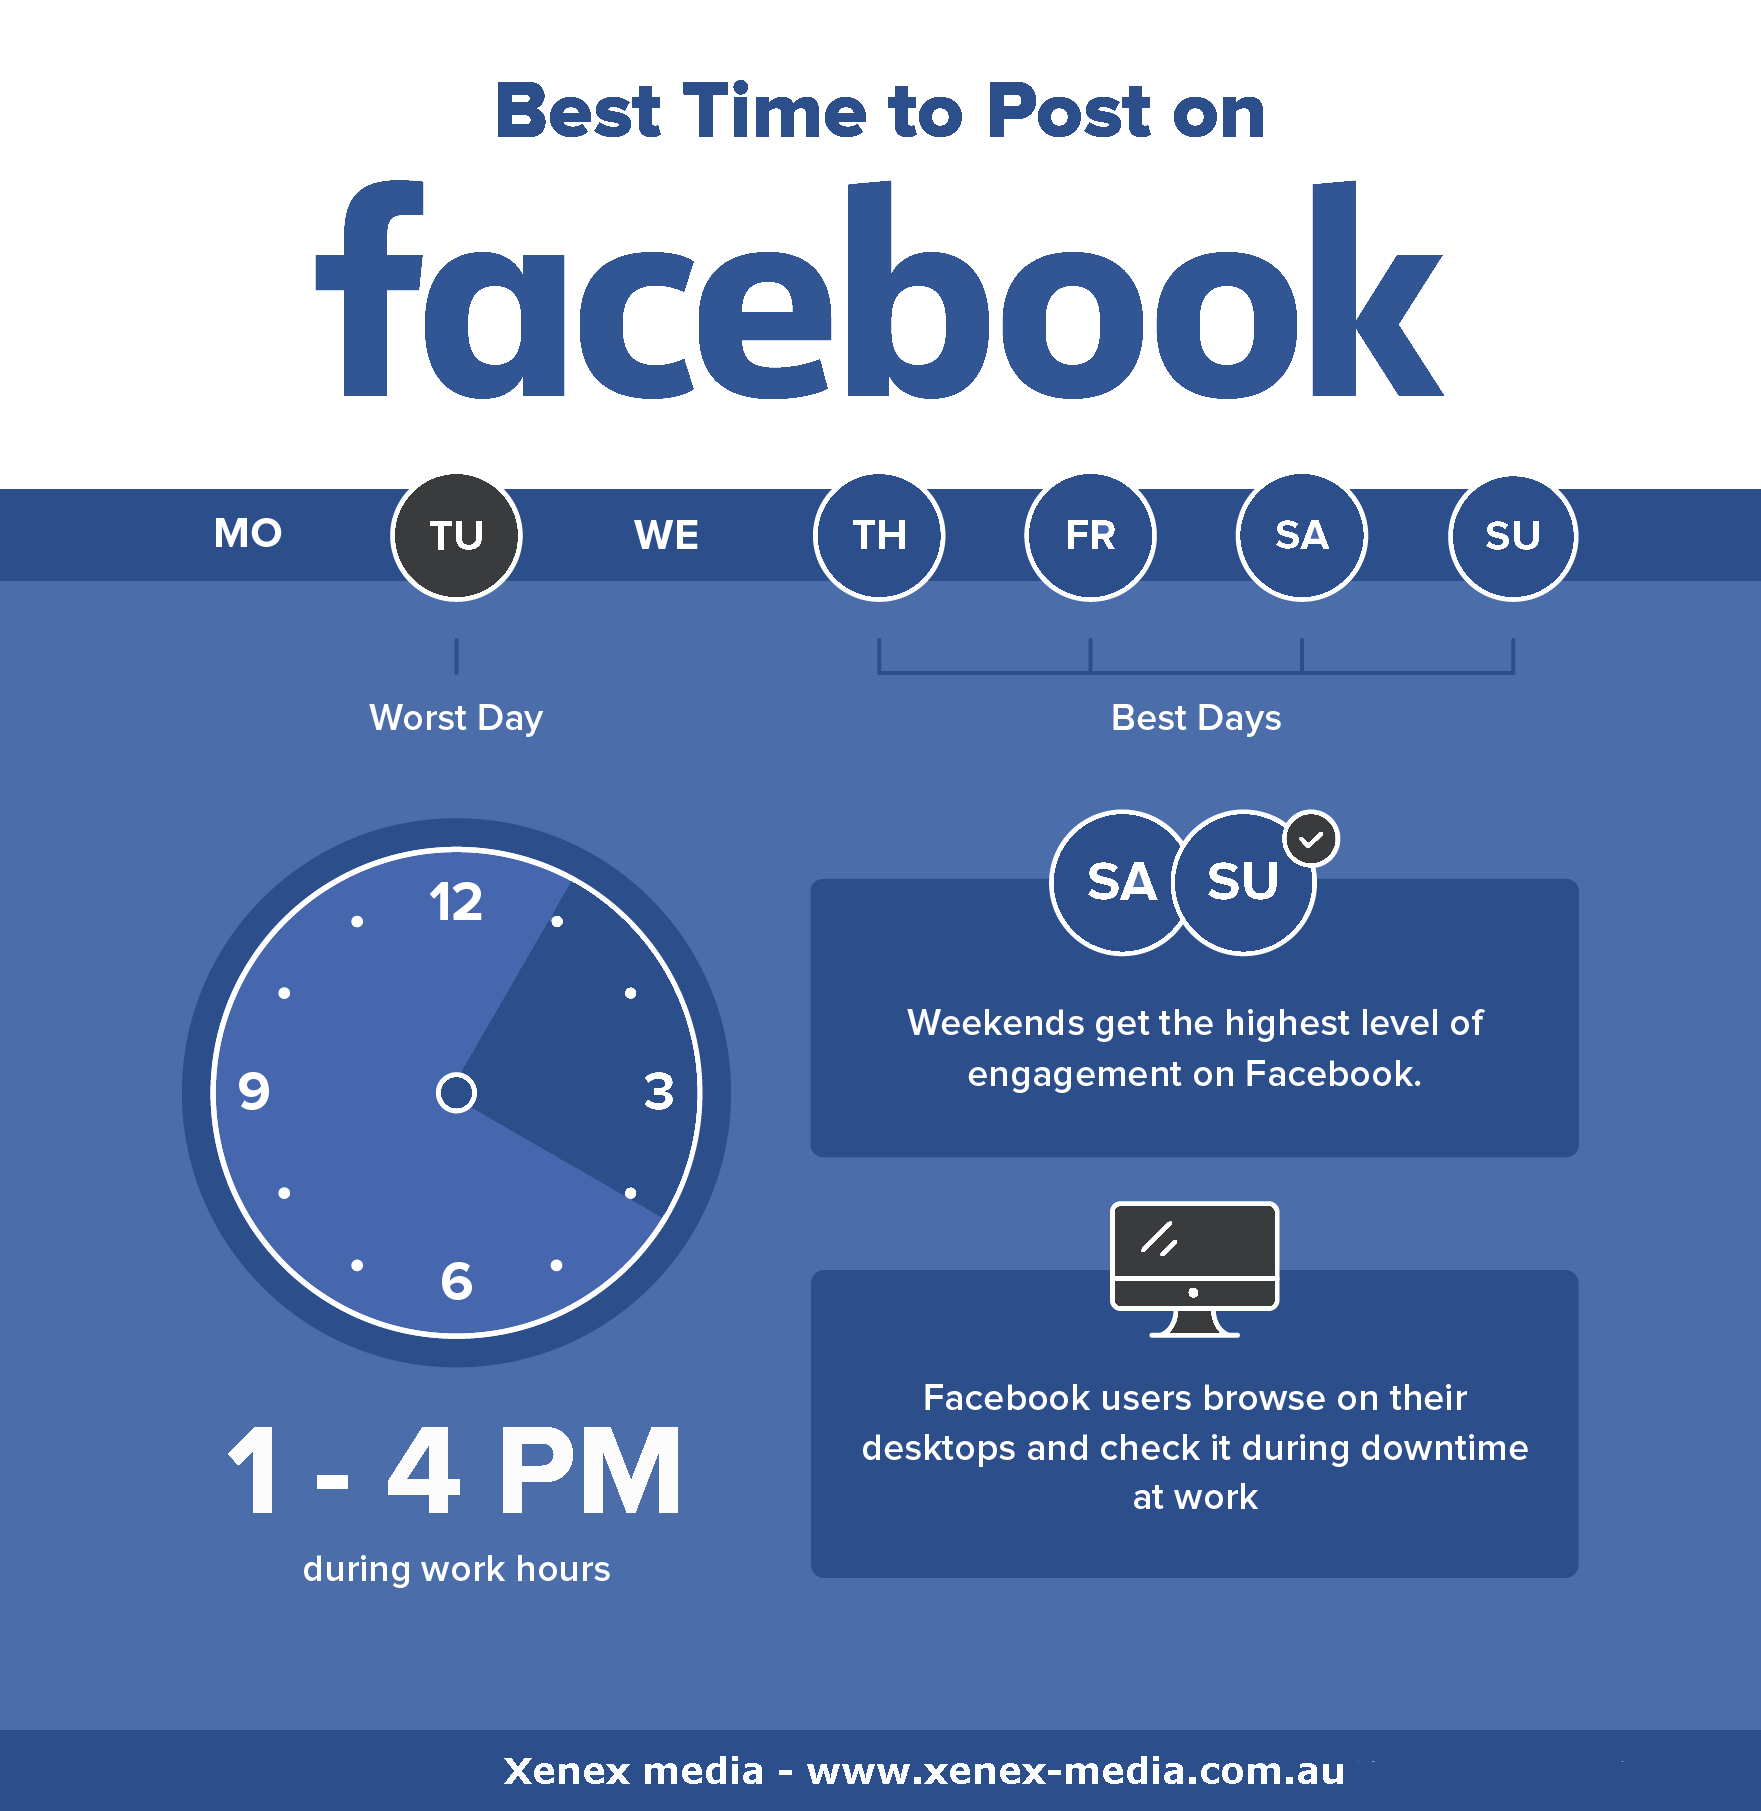 Best time to post on social media platforms in 2019